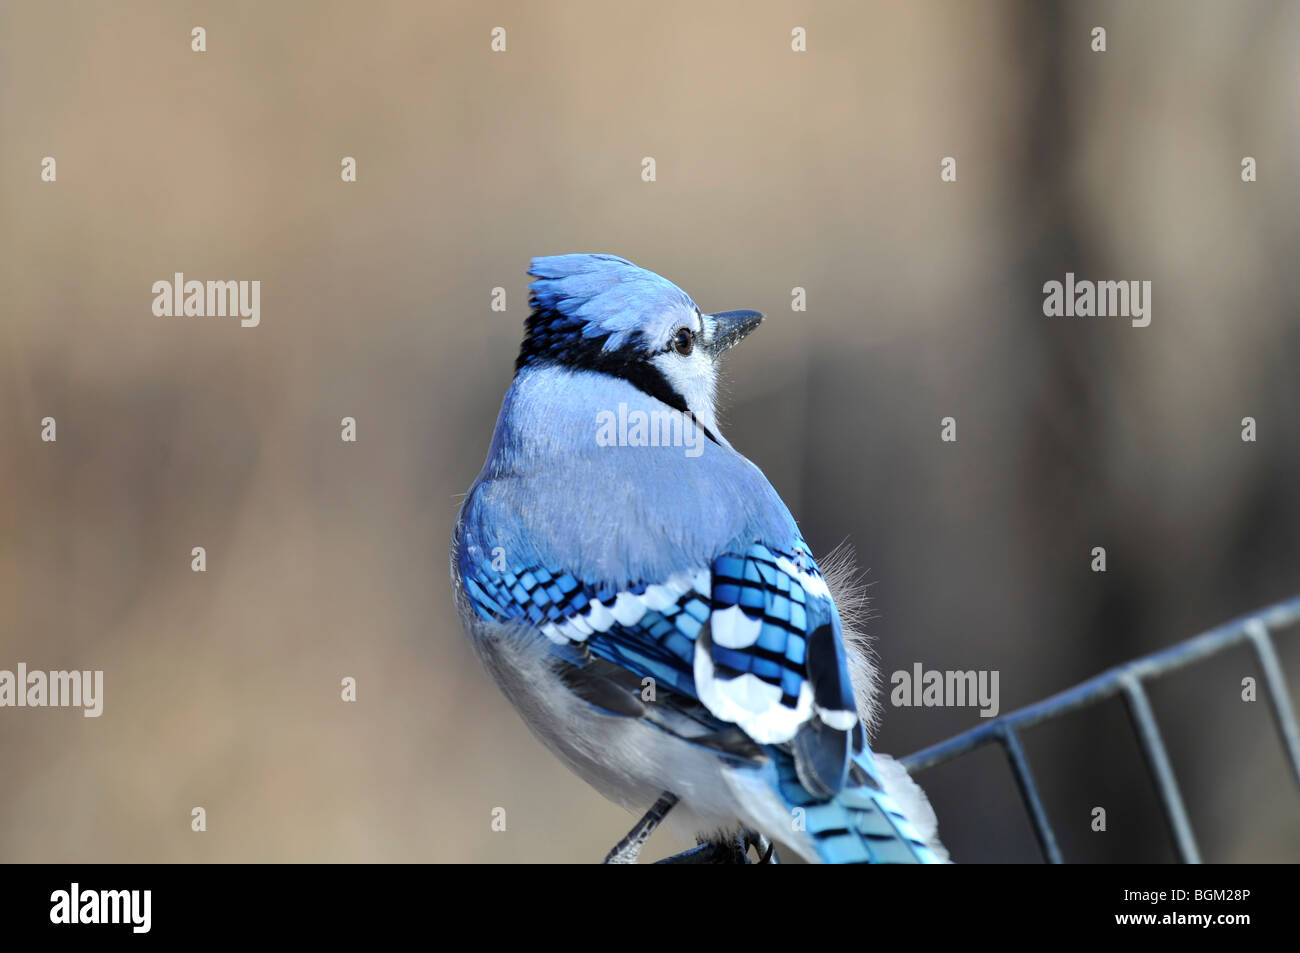 Blue Jay: Cyanocitta cristata. An adult Blue Jay photographed in Central Park, Manhattan on a cold winter morning Stock Photo